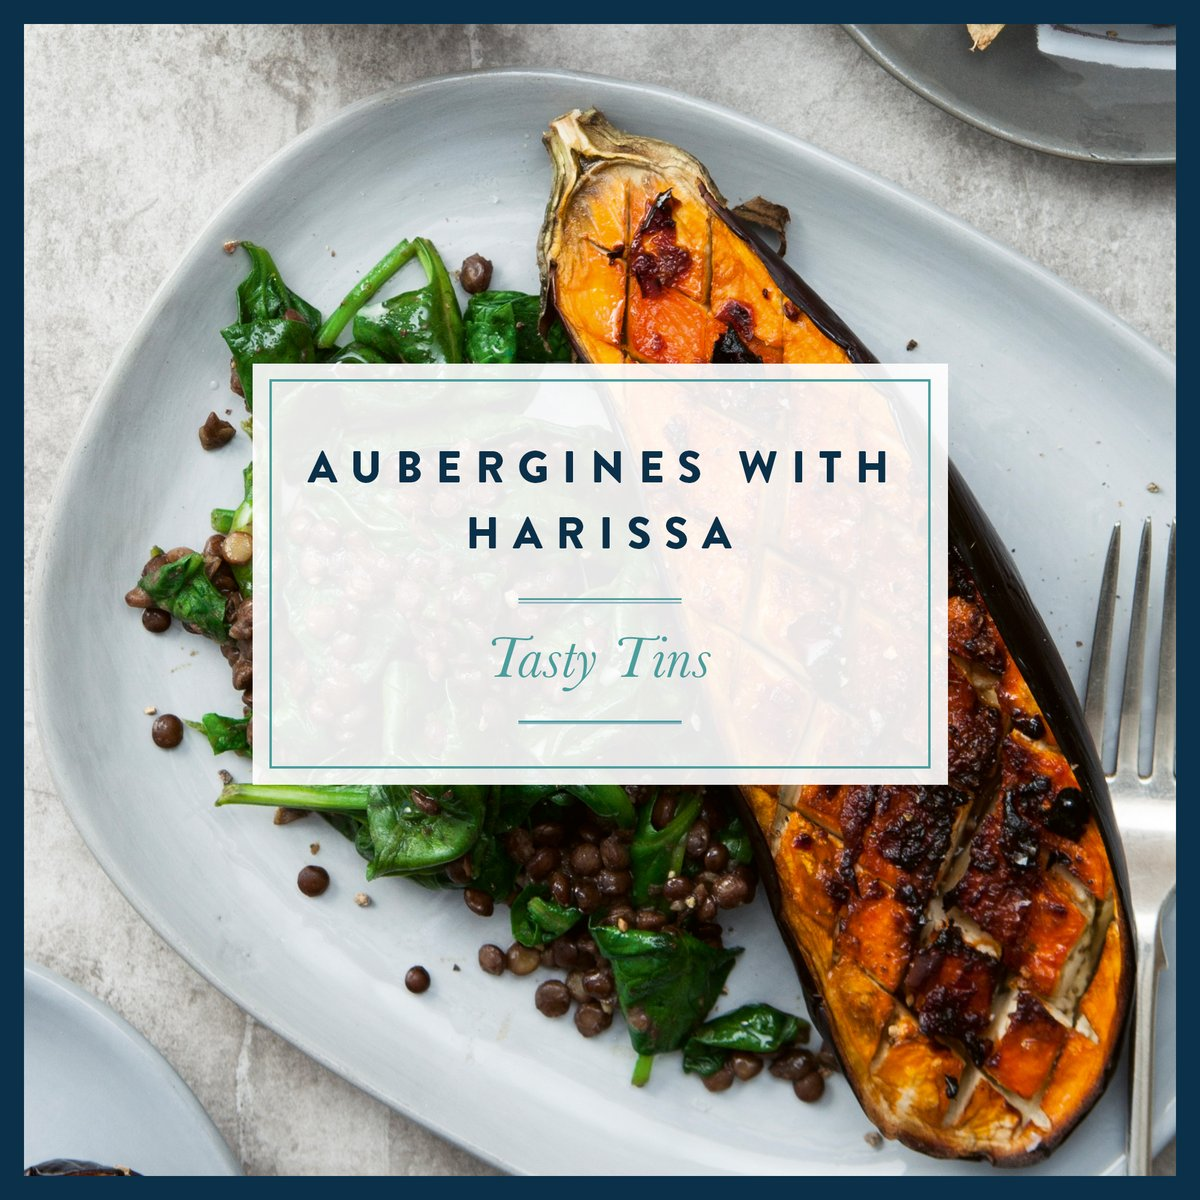 Aubergines with Harissa, Lentils and Greens! With all of our vegetables we now have to eat from our gardens, we felt like sharing another veggie delight!! Head over to our Instagram to try this feast https://t.co/QnqGsaYJSe #HairyBikers https://t.co/FqtWhnTIiz